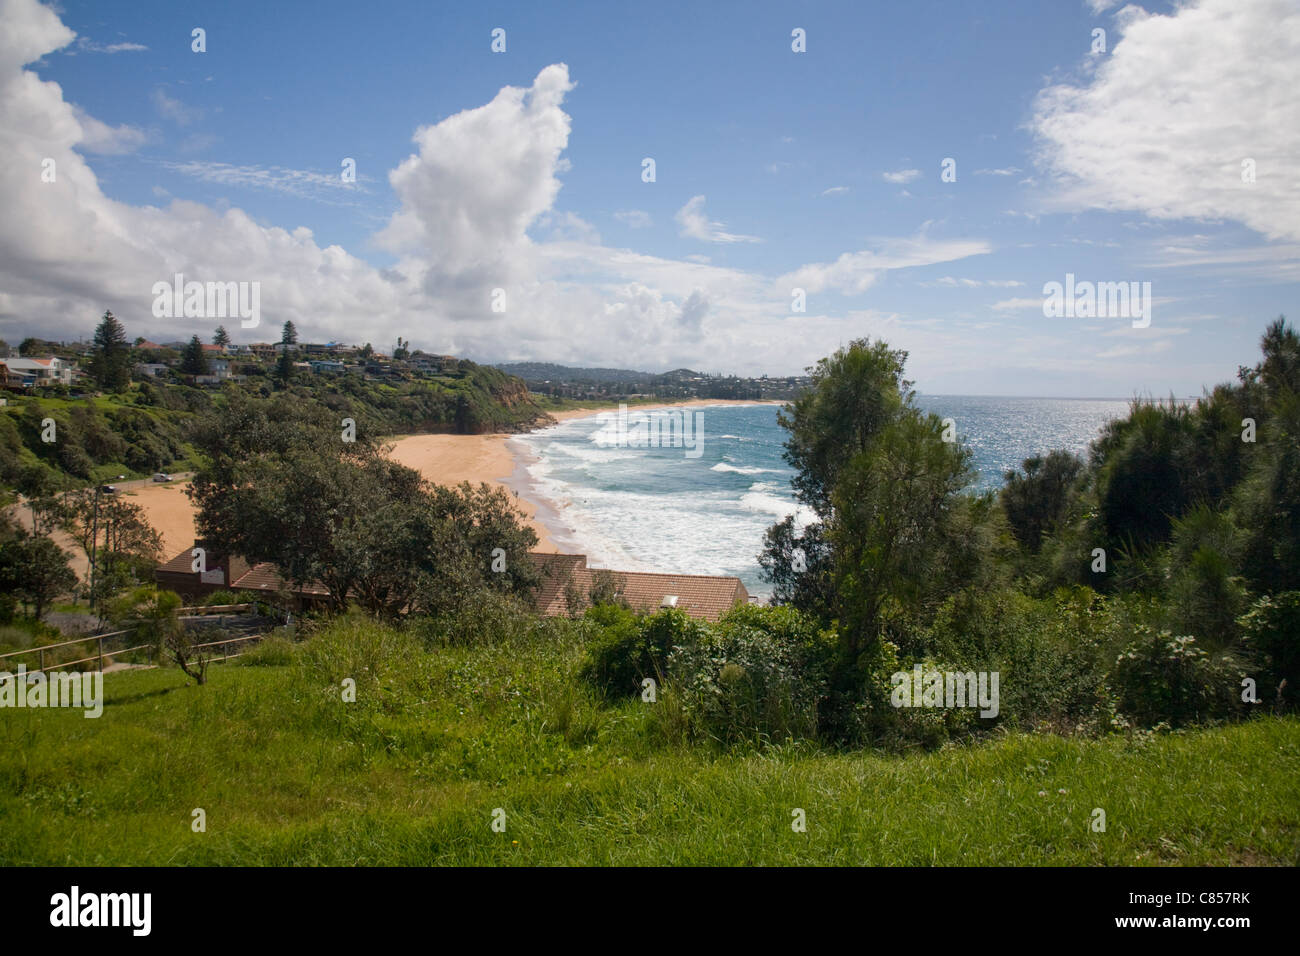 warriewood beach one of sydneys famous northern beaches,nsw,australia Stock Photo